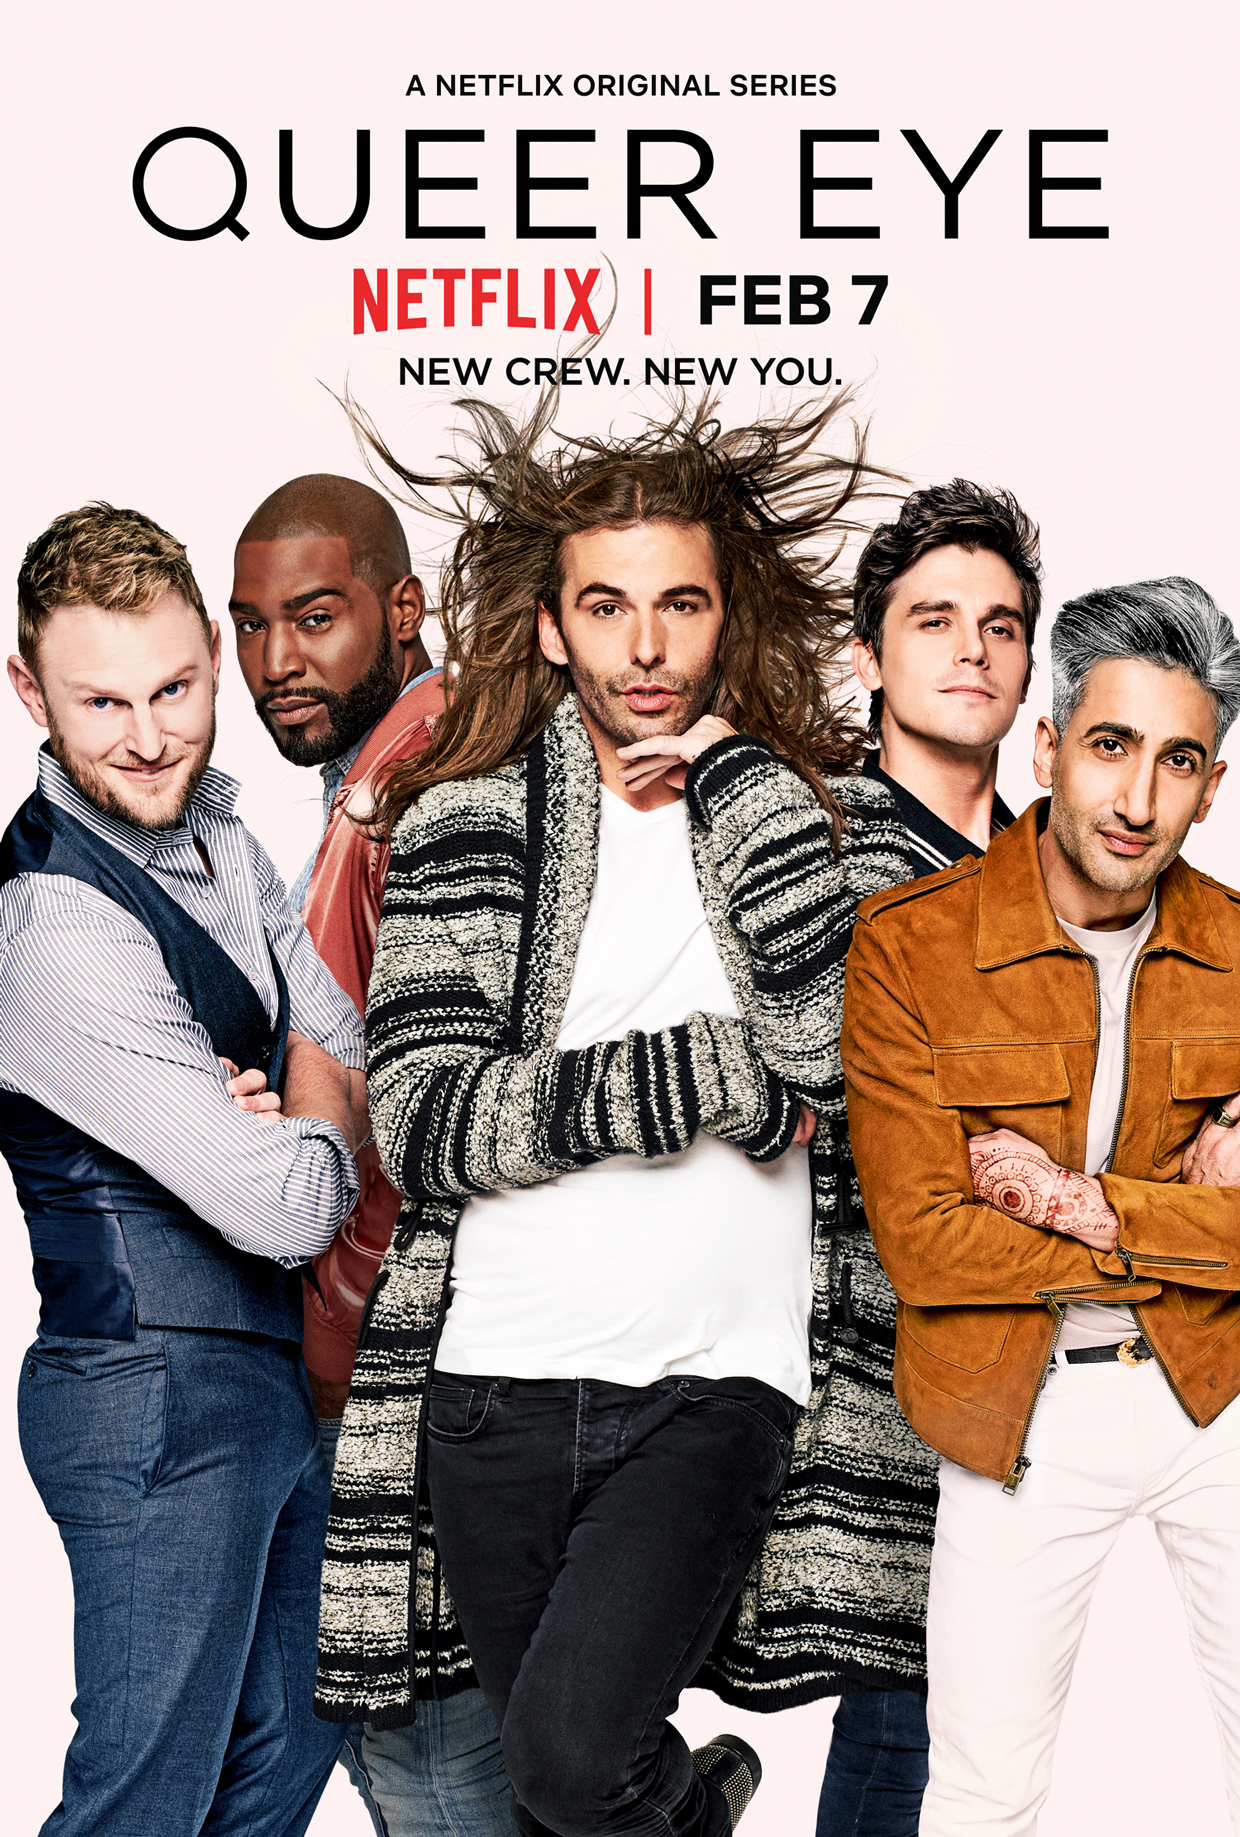 Queer Eye - Five beautiful men transforming people from blah to YAASSS. This show is succinct in its delivery and more than anything: INSPIRING (lots of happy tears incoming).It will make you want to live your best life and bring your best to every area of your life. If I had to choose one show to watch off this list, this is the one!